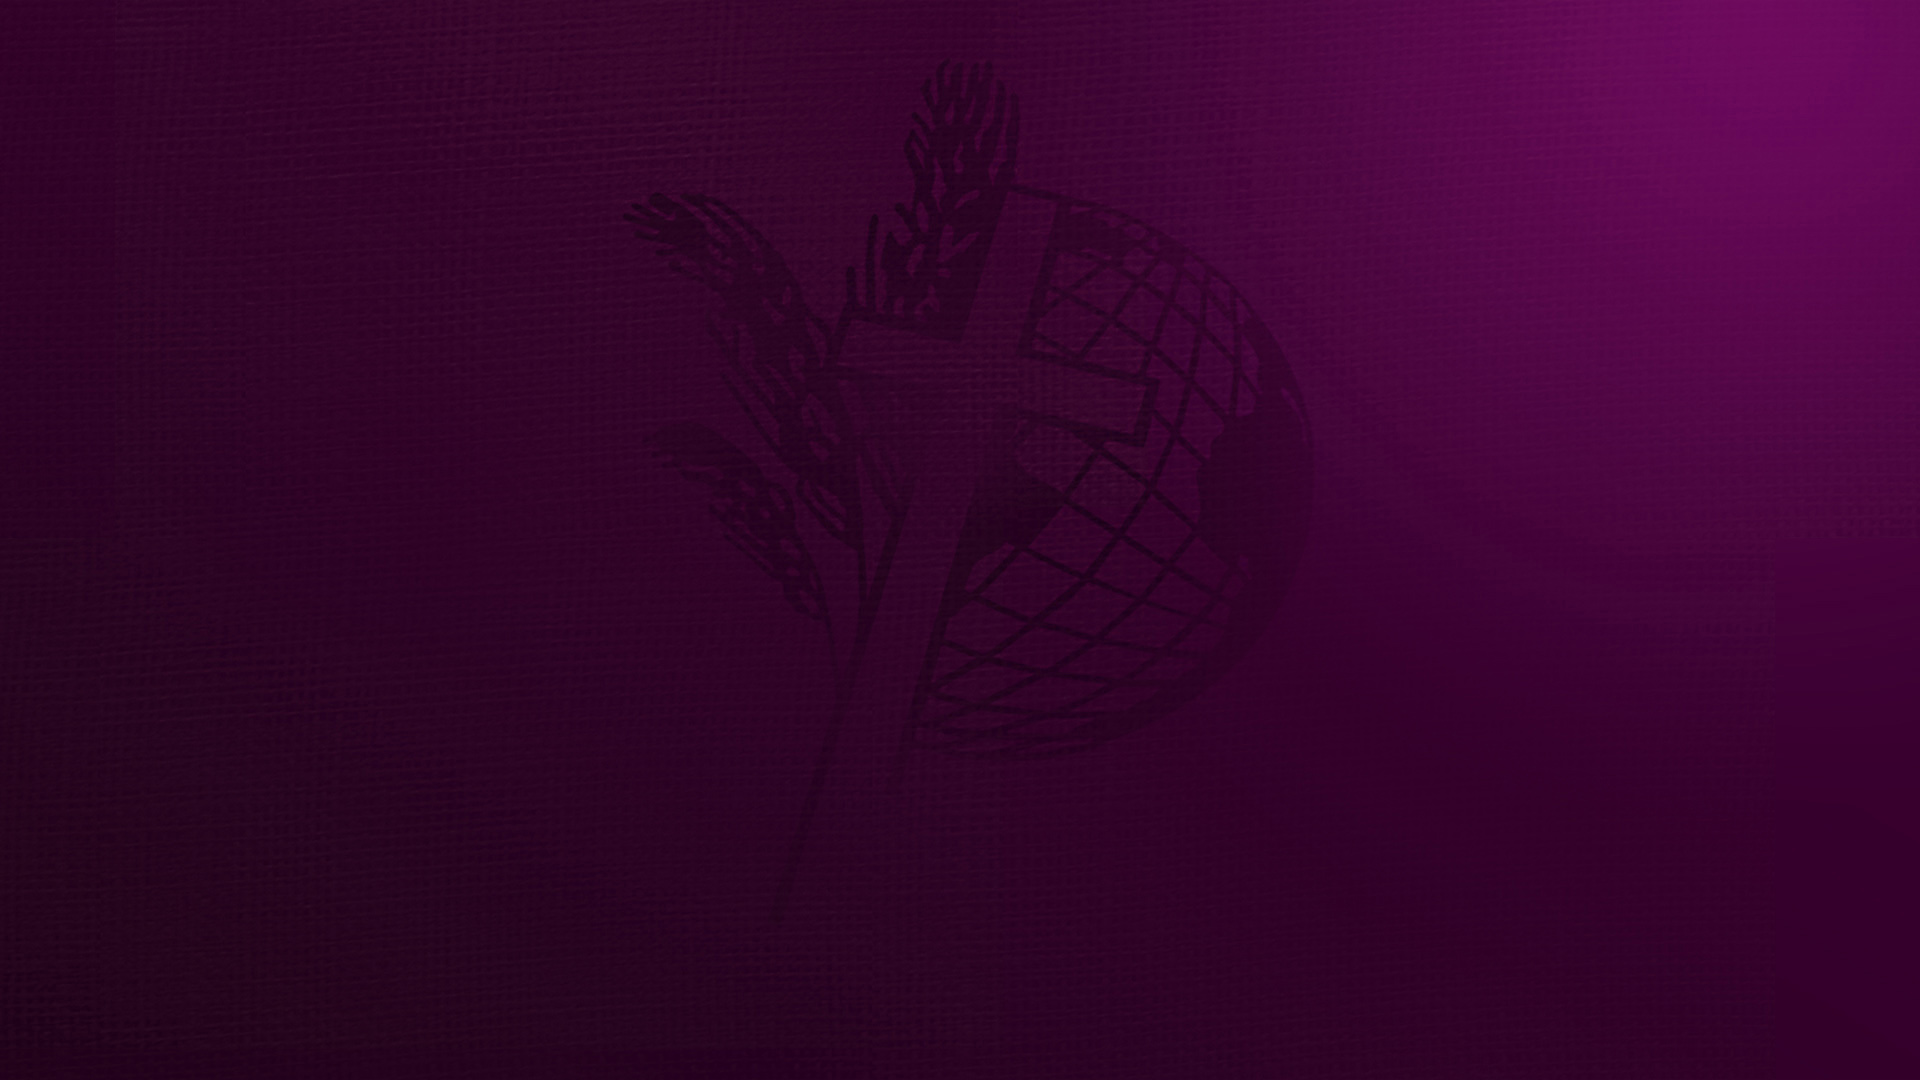 Get your HTMI HD wallpaper Designed for you desktop and mobile 1920x1080